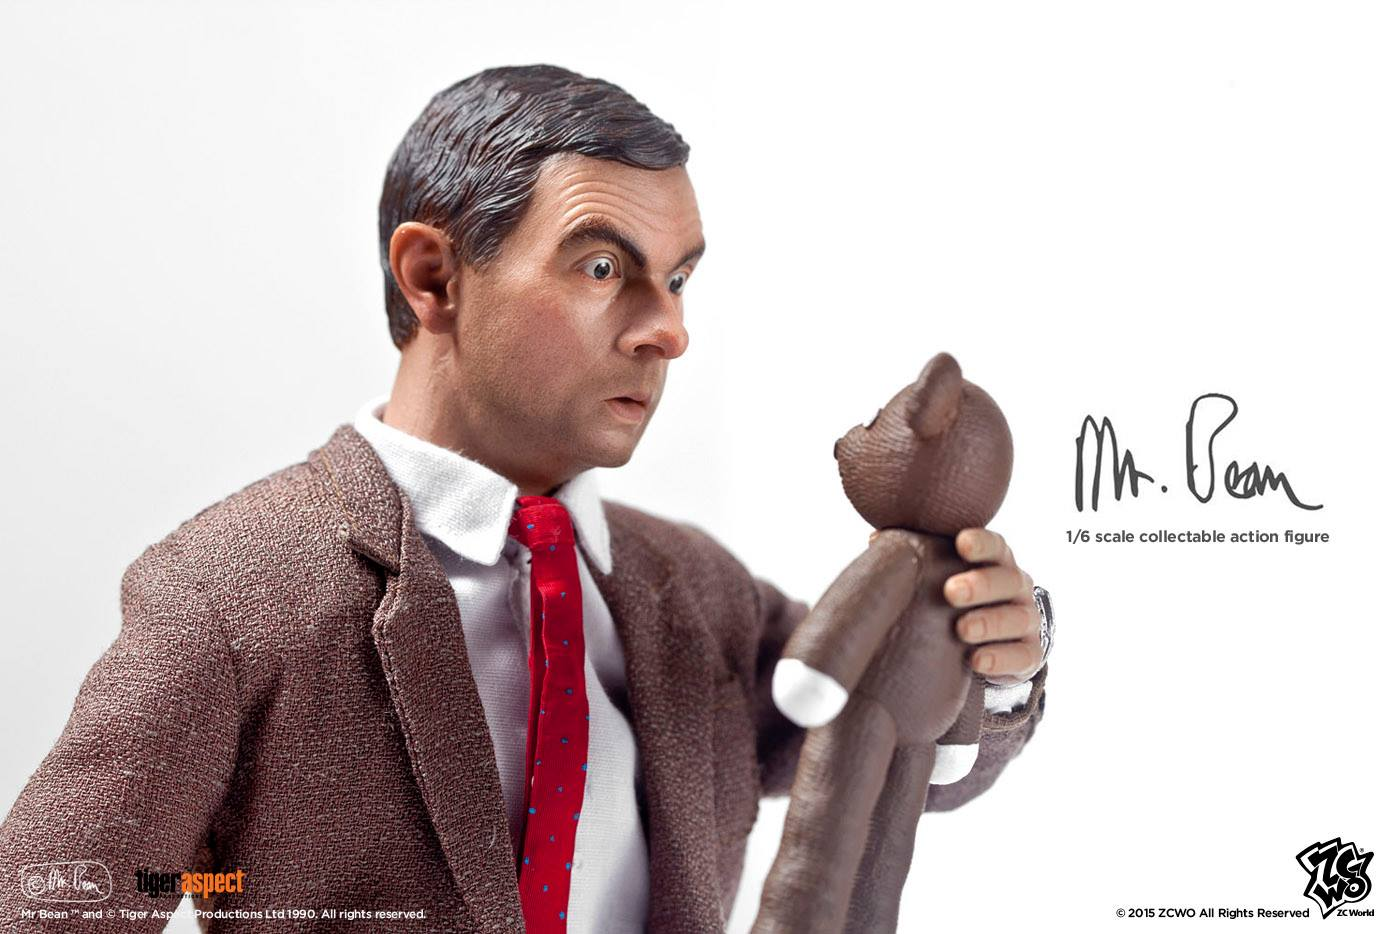 [ZCWO] Mr. Bean - 1/6 scale 150246ixnwnlcin9flibki